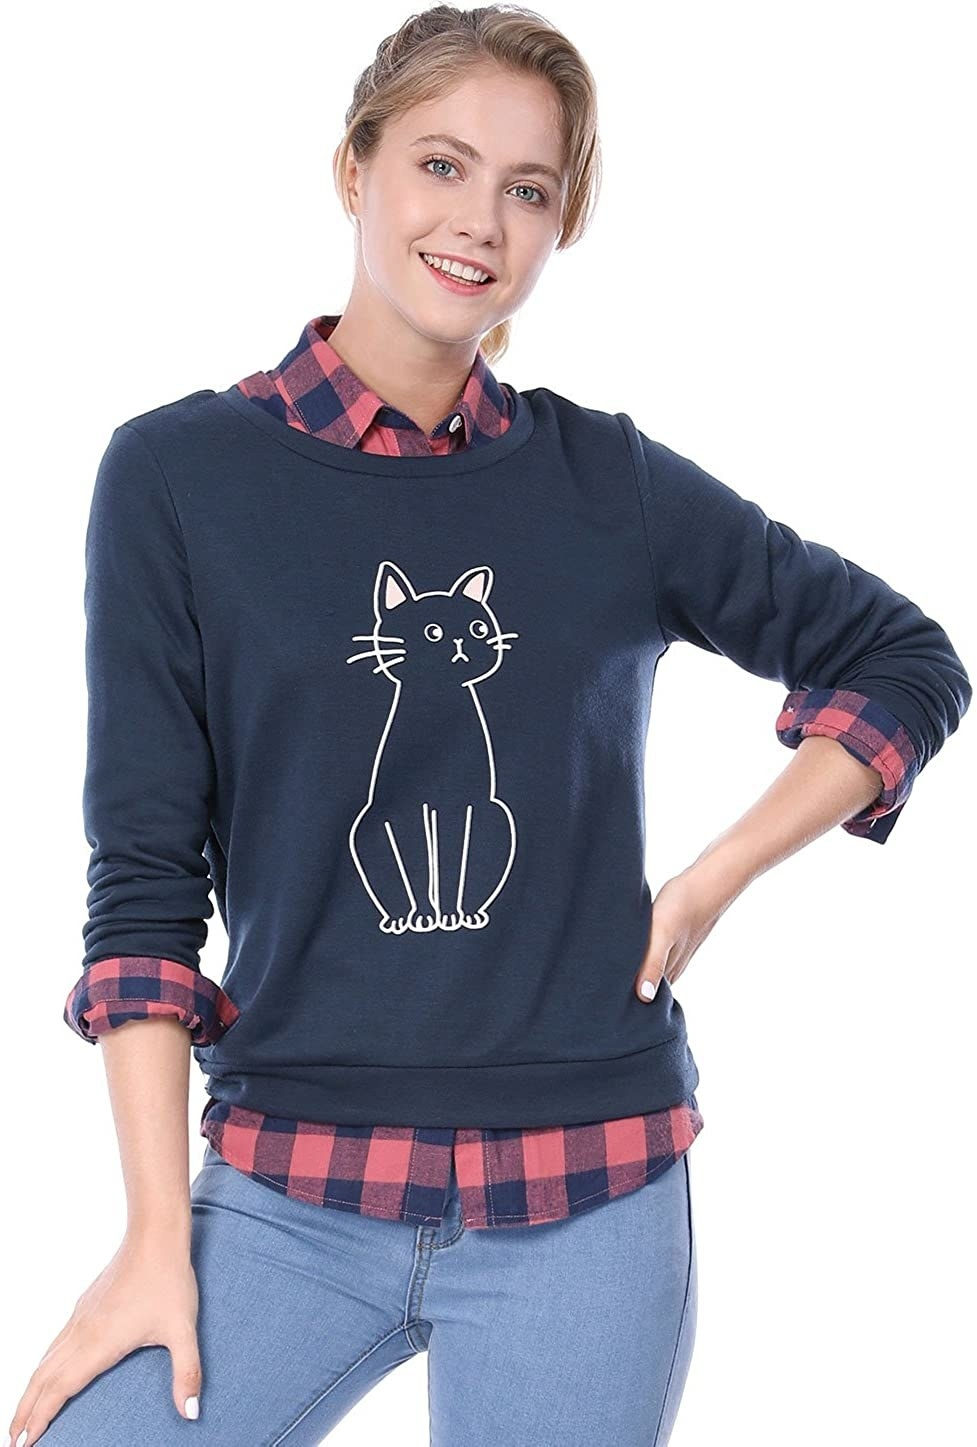 A model wearing the navy sweatshirt with a drawing of a cat on it layered over a plaid shirt